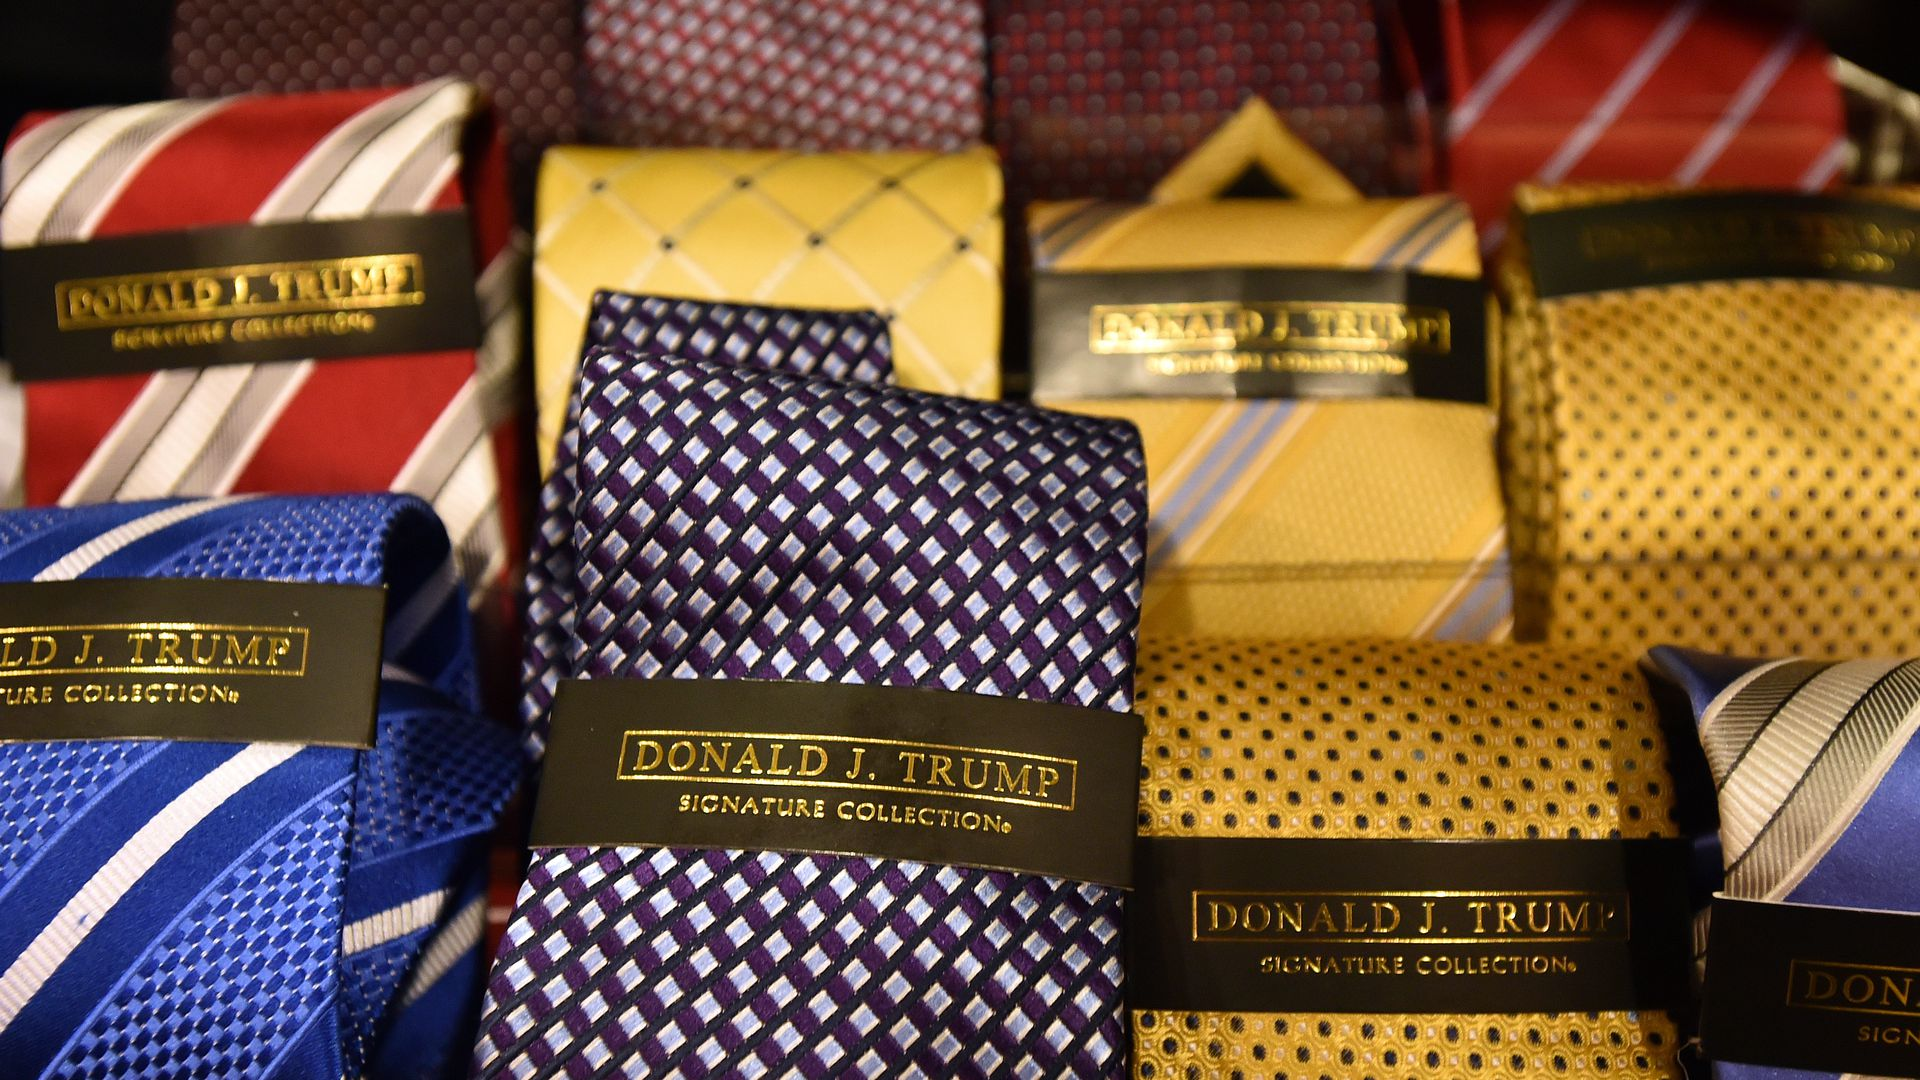 Donald J. Trump brand ties are seen inside the Trump International Hotel in Las Vegas, Nevada on February 23, 2016.